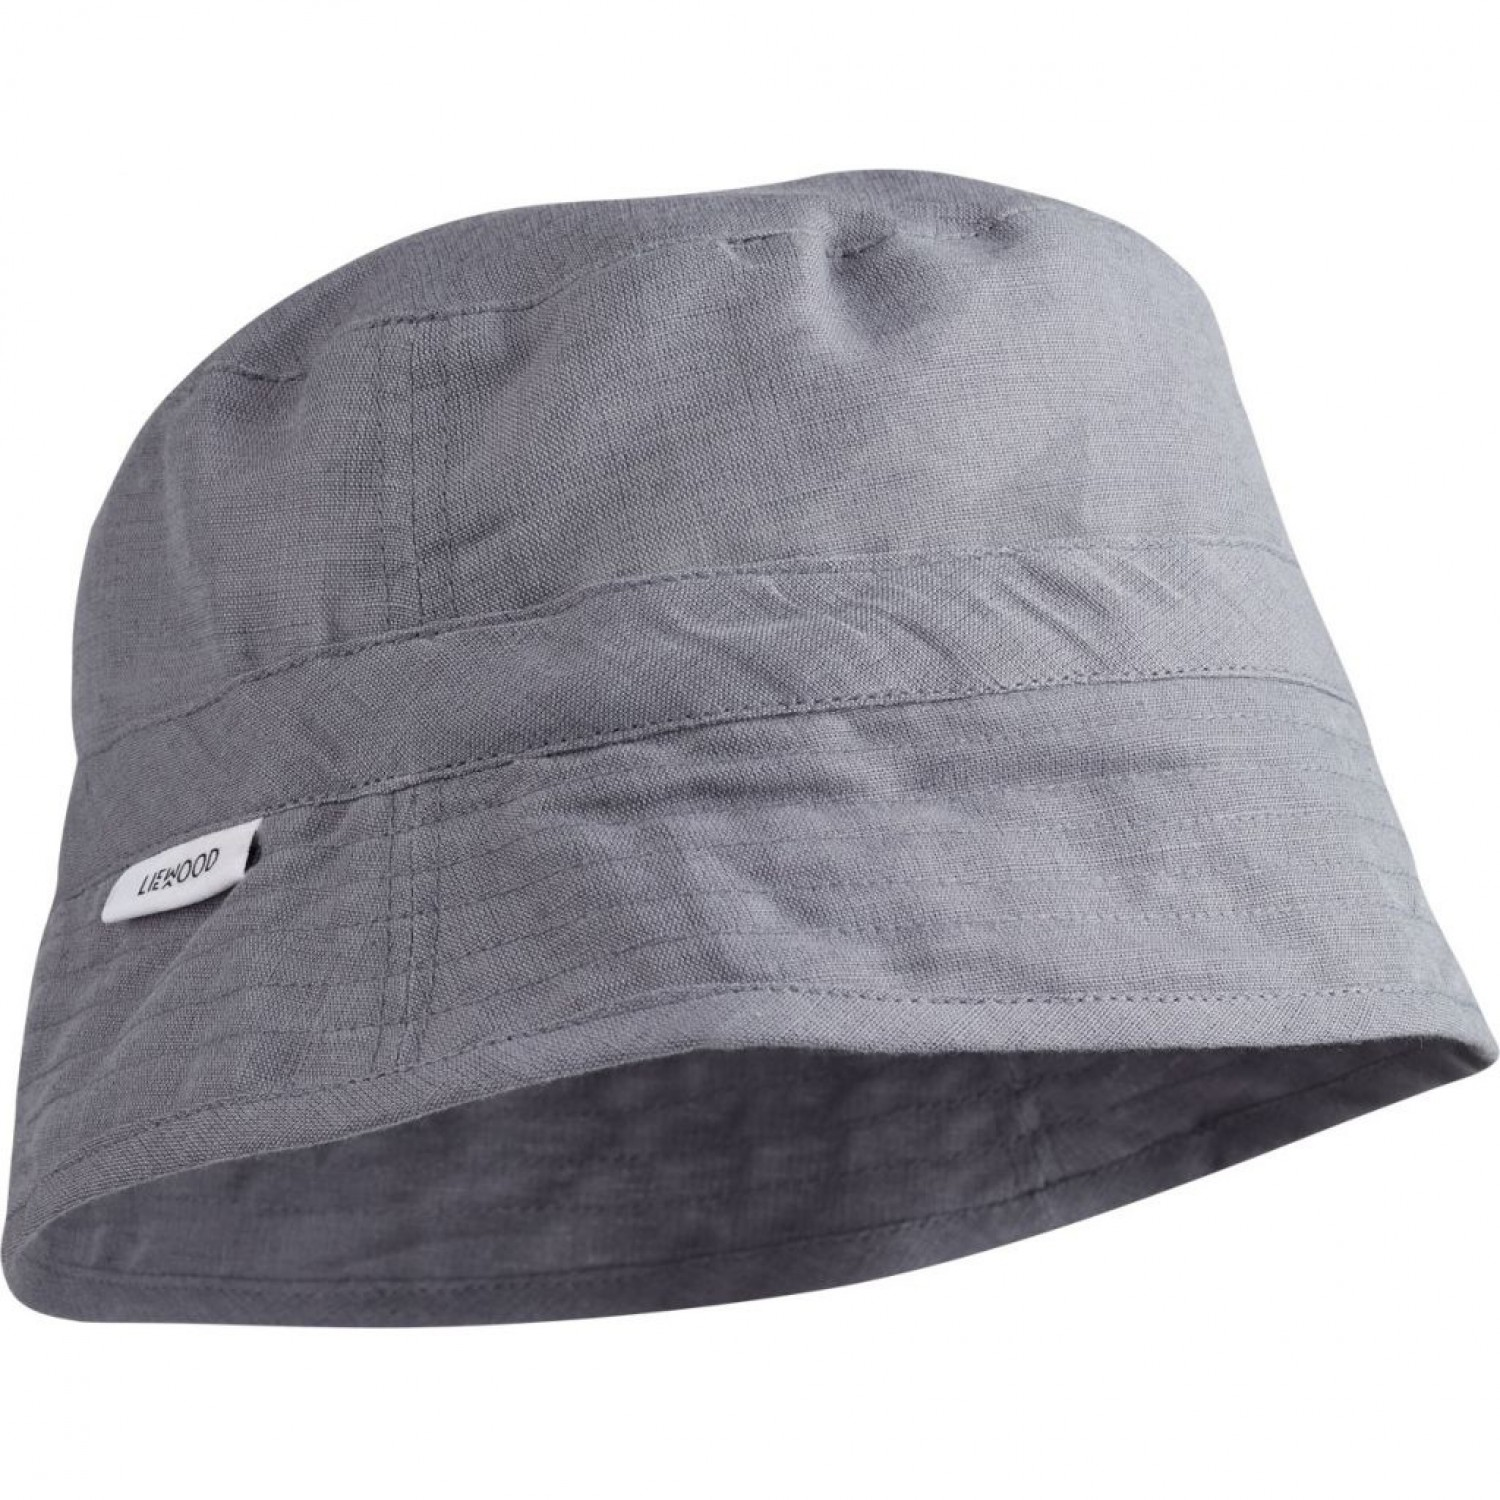 SVEN BUCKET HAT - DUMBO GREY